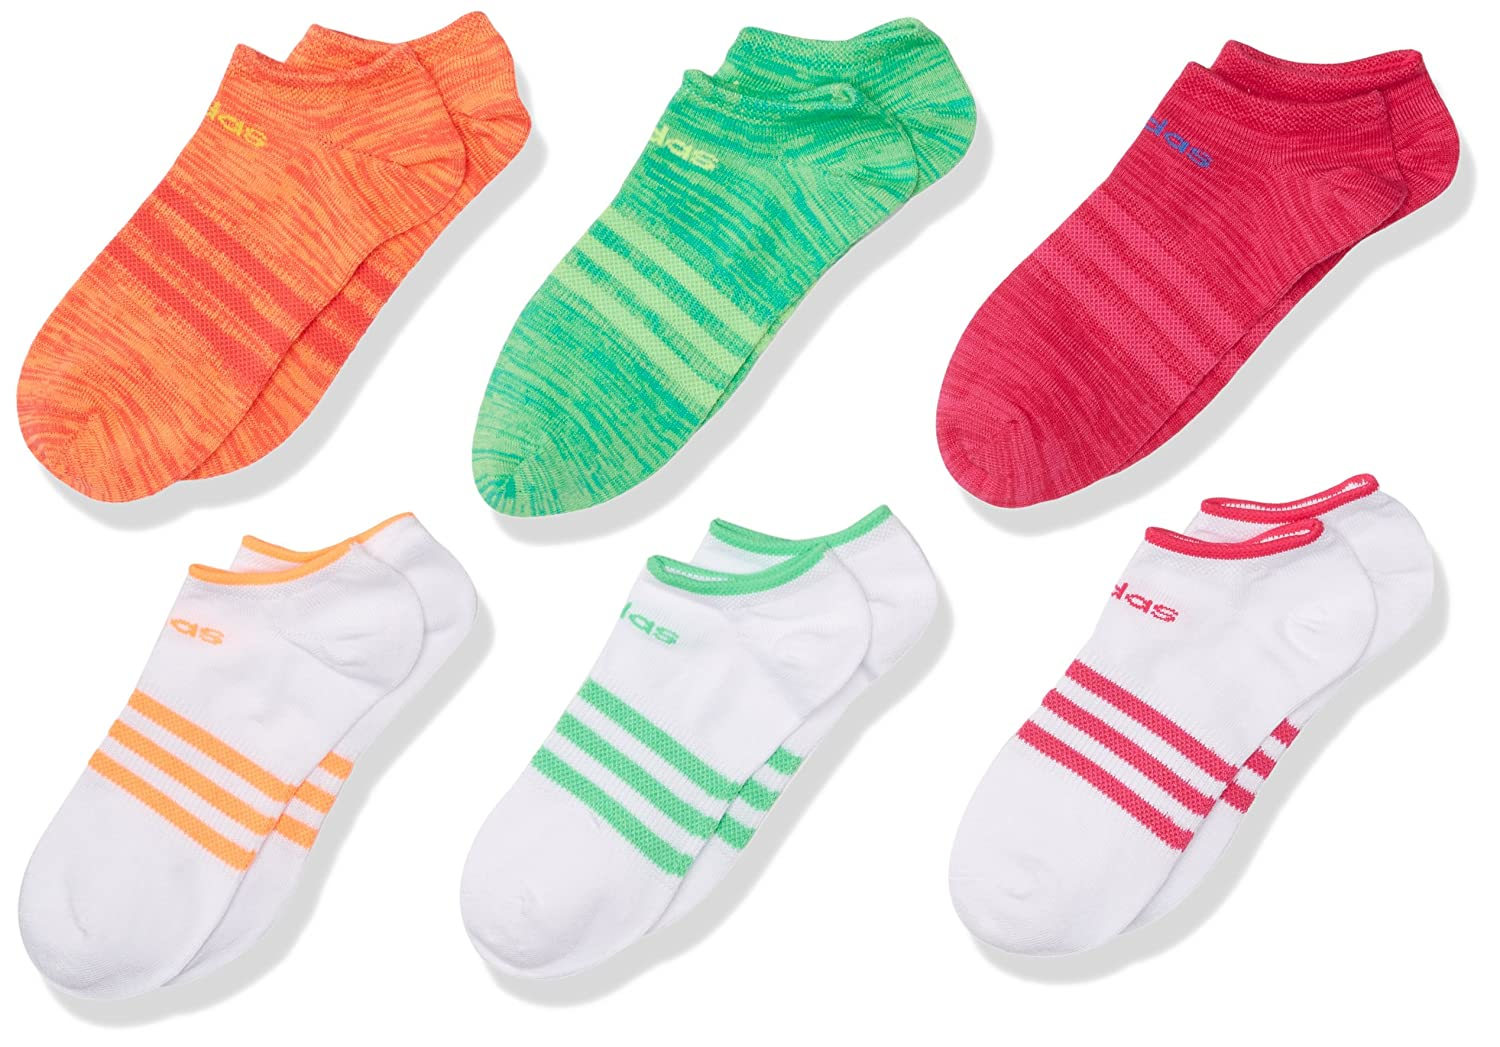 adidas Girl's Superlite No Show Socks (Pack of 6), M/M 104284